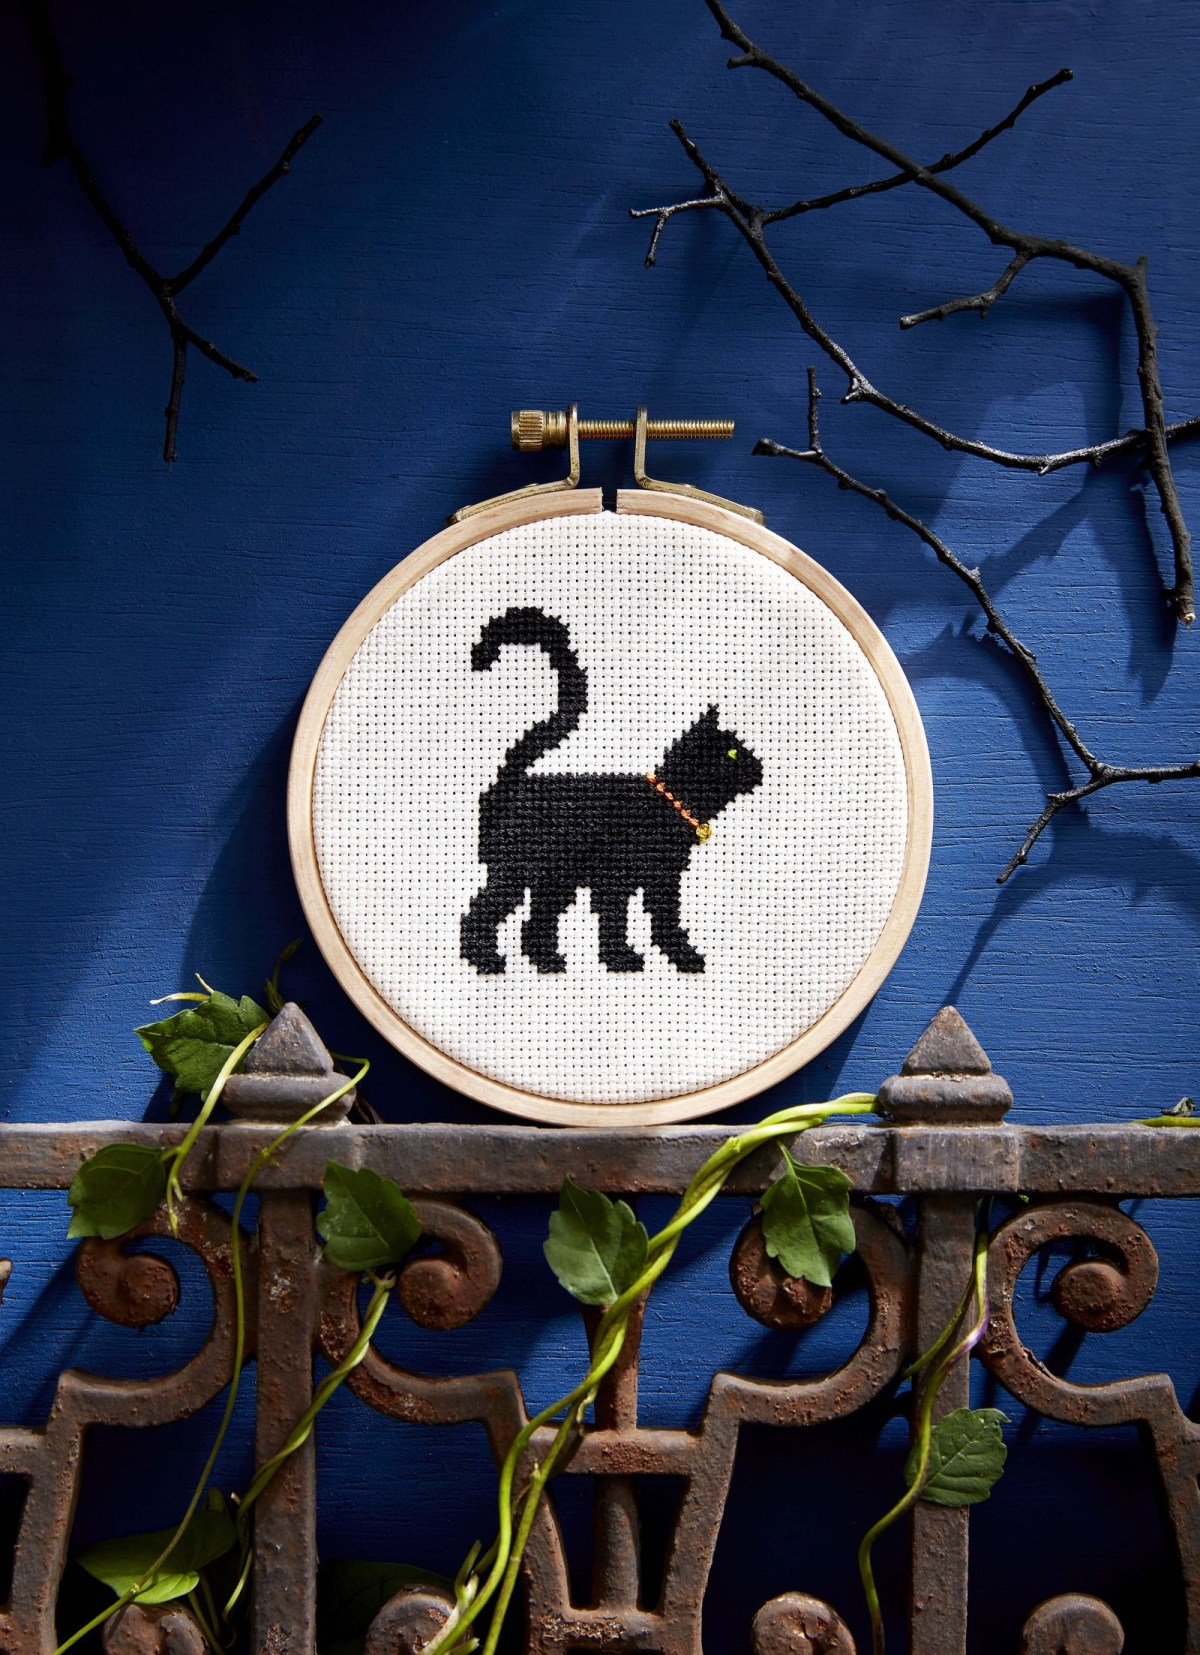 Black cat cross-stitch DIY Effortless Halloween Crafts For Kids To keep Them Busy This Month